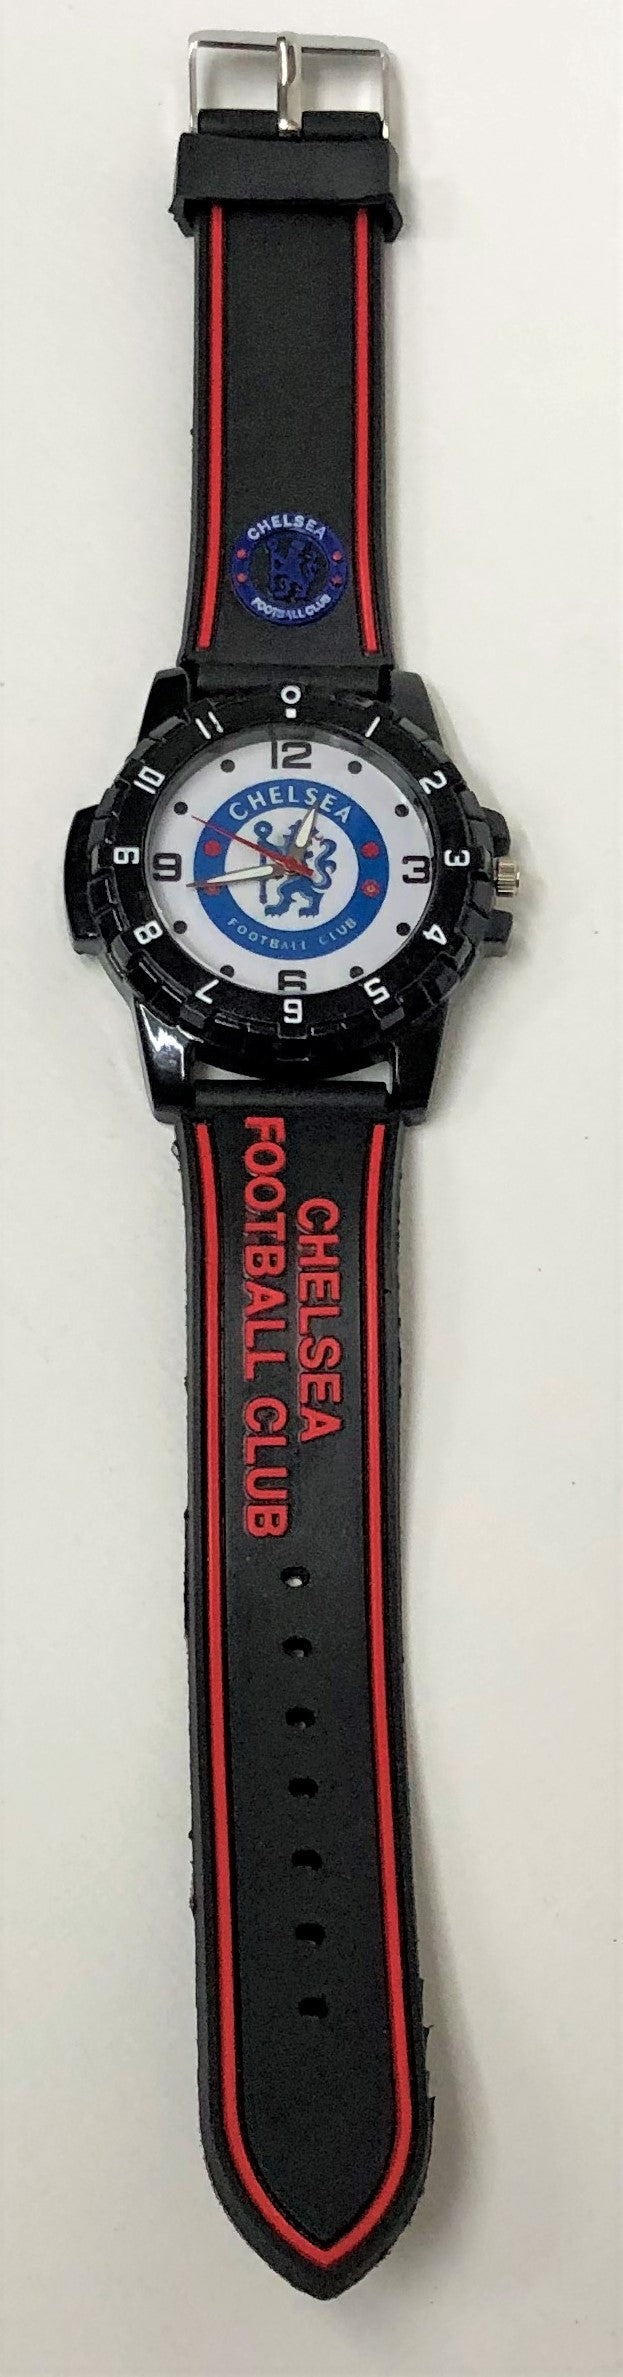 Kids Chelsea Wrist Watch